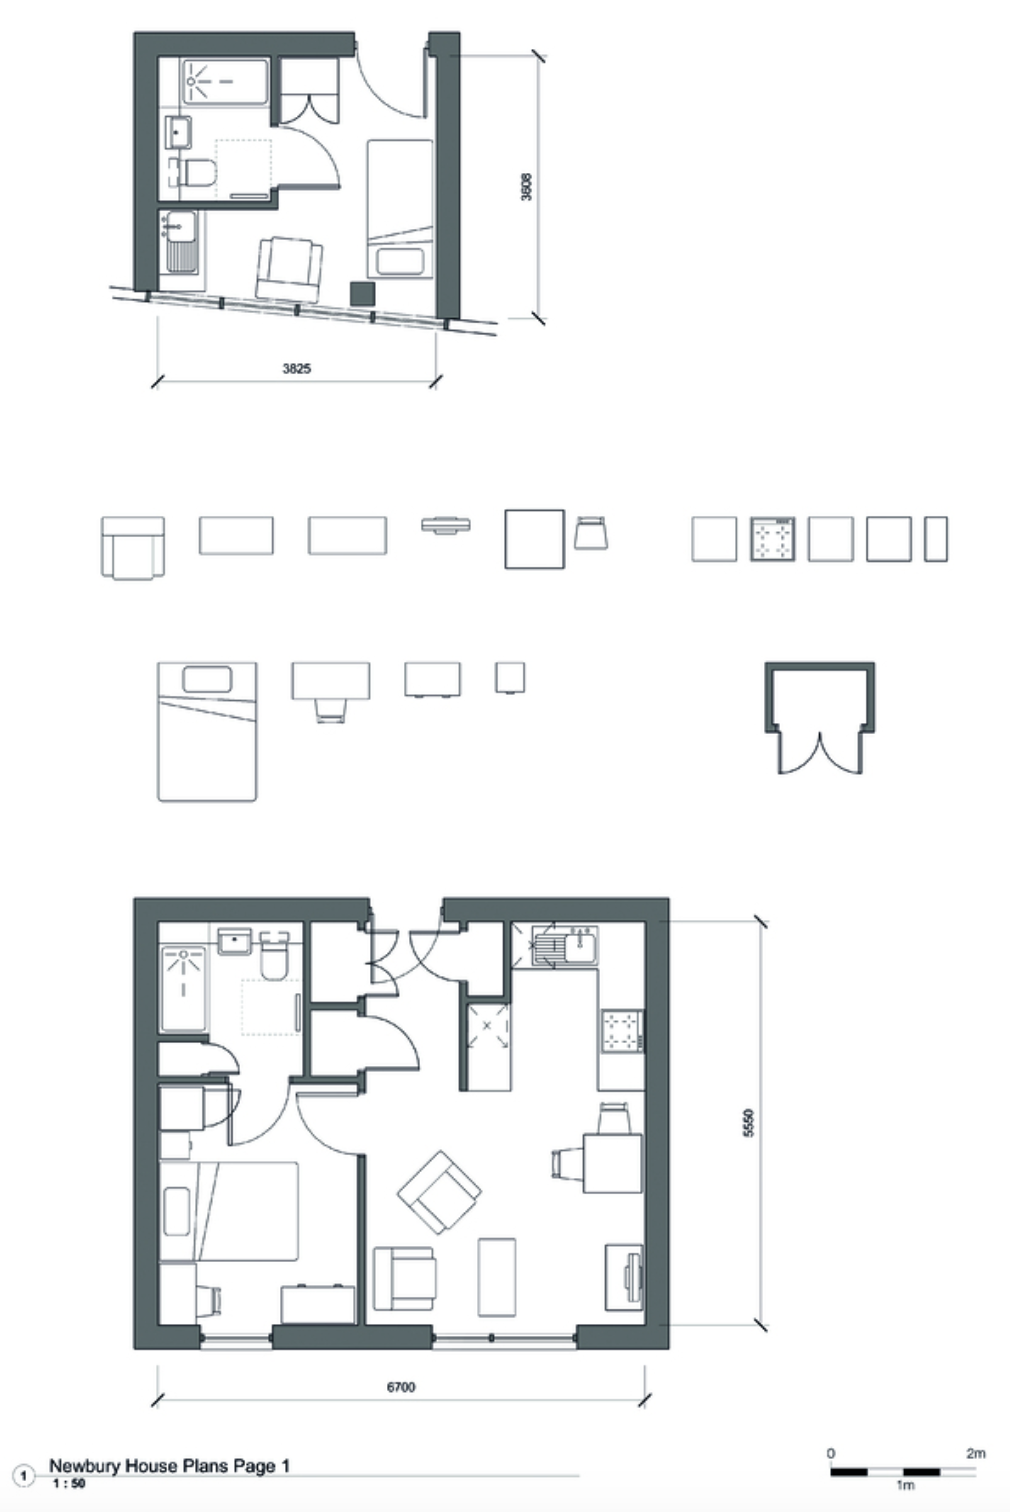 Comparison of a one-person studio in Newbury House compared to the space standard equivalent